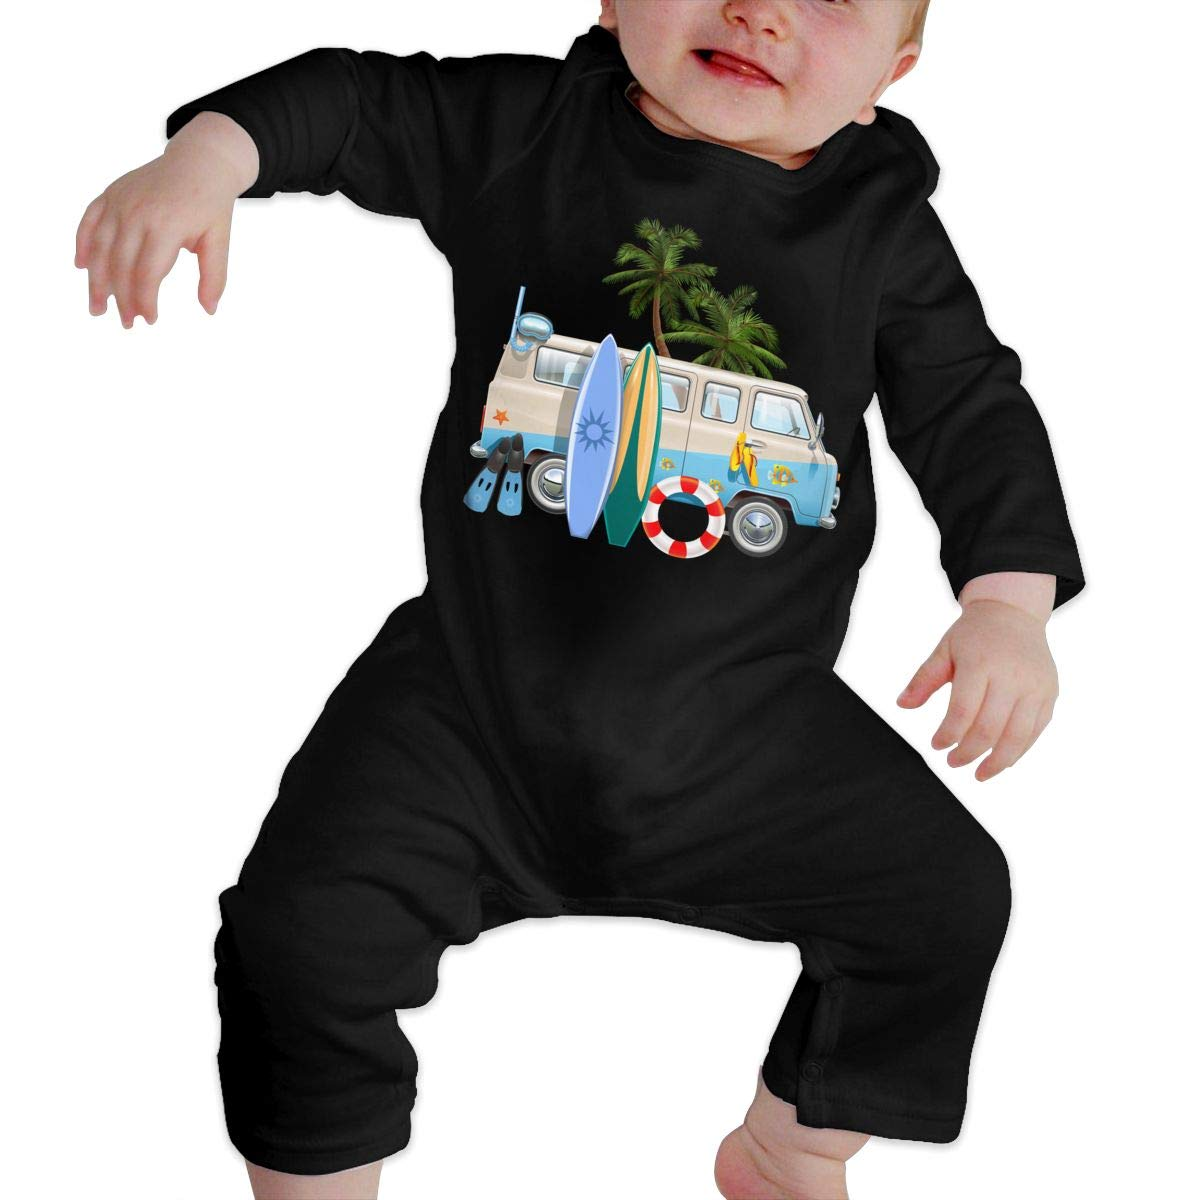 UGFGF-S3 Surfboard Car Newborn Baby Long Sleeve Bodysuit Baby Rompers